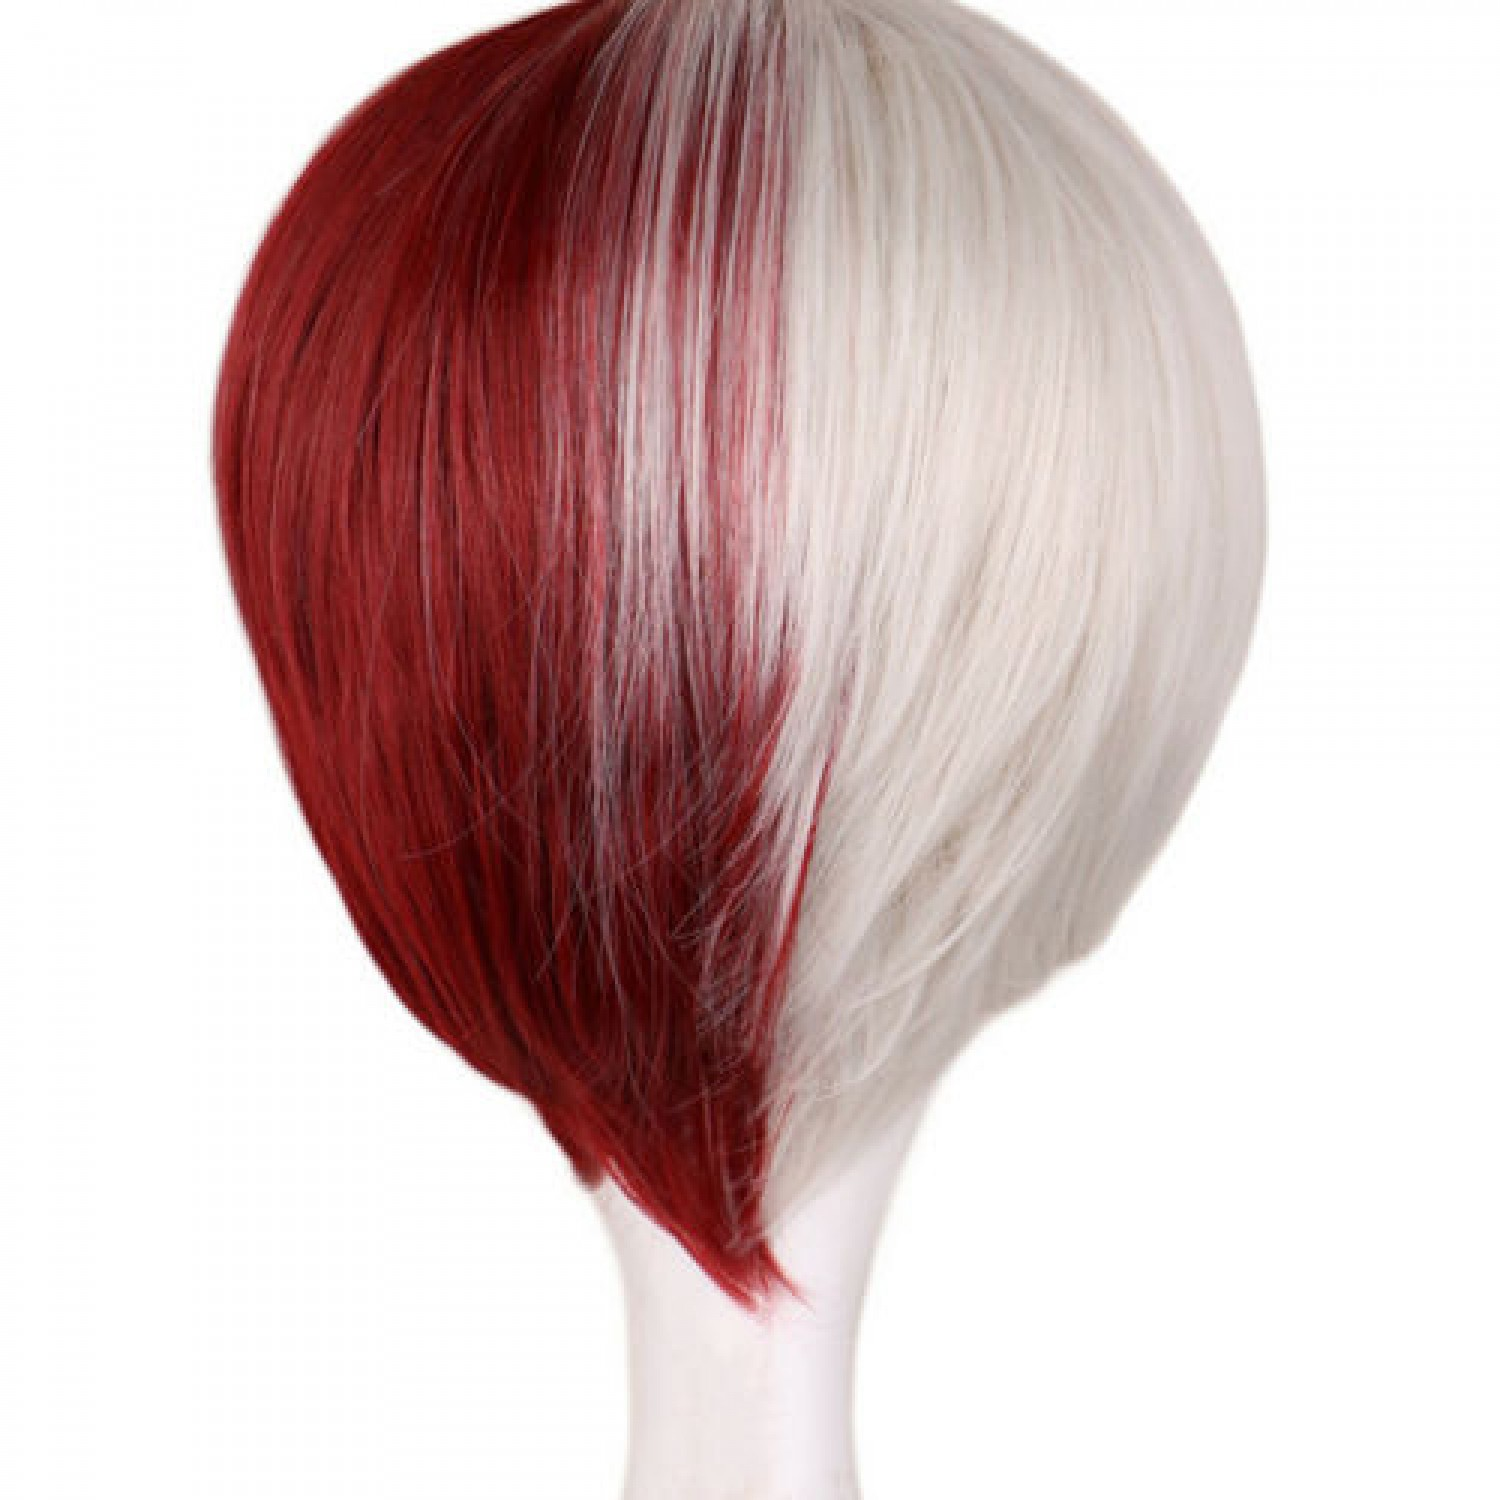 My Hero Academia Todoroki Shouto Cosplay Hair Wig